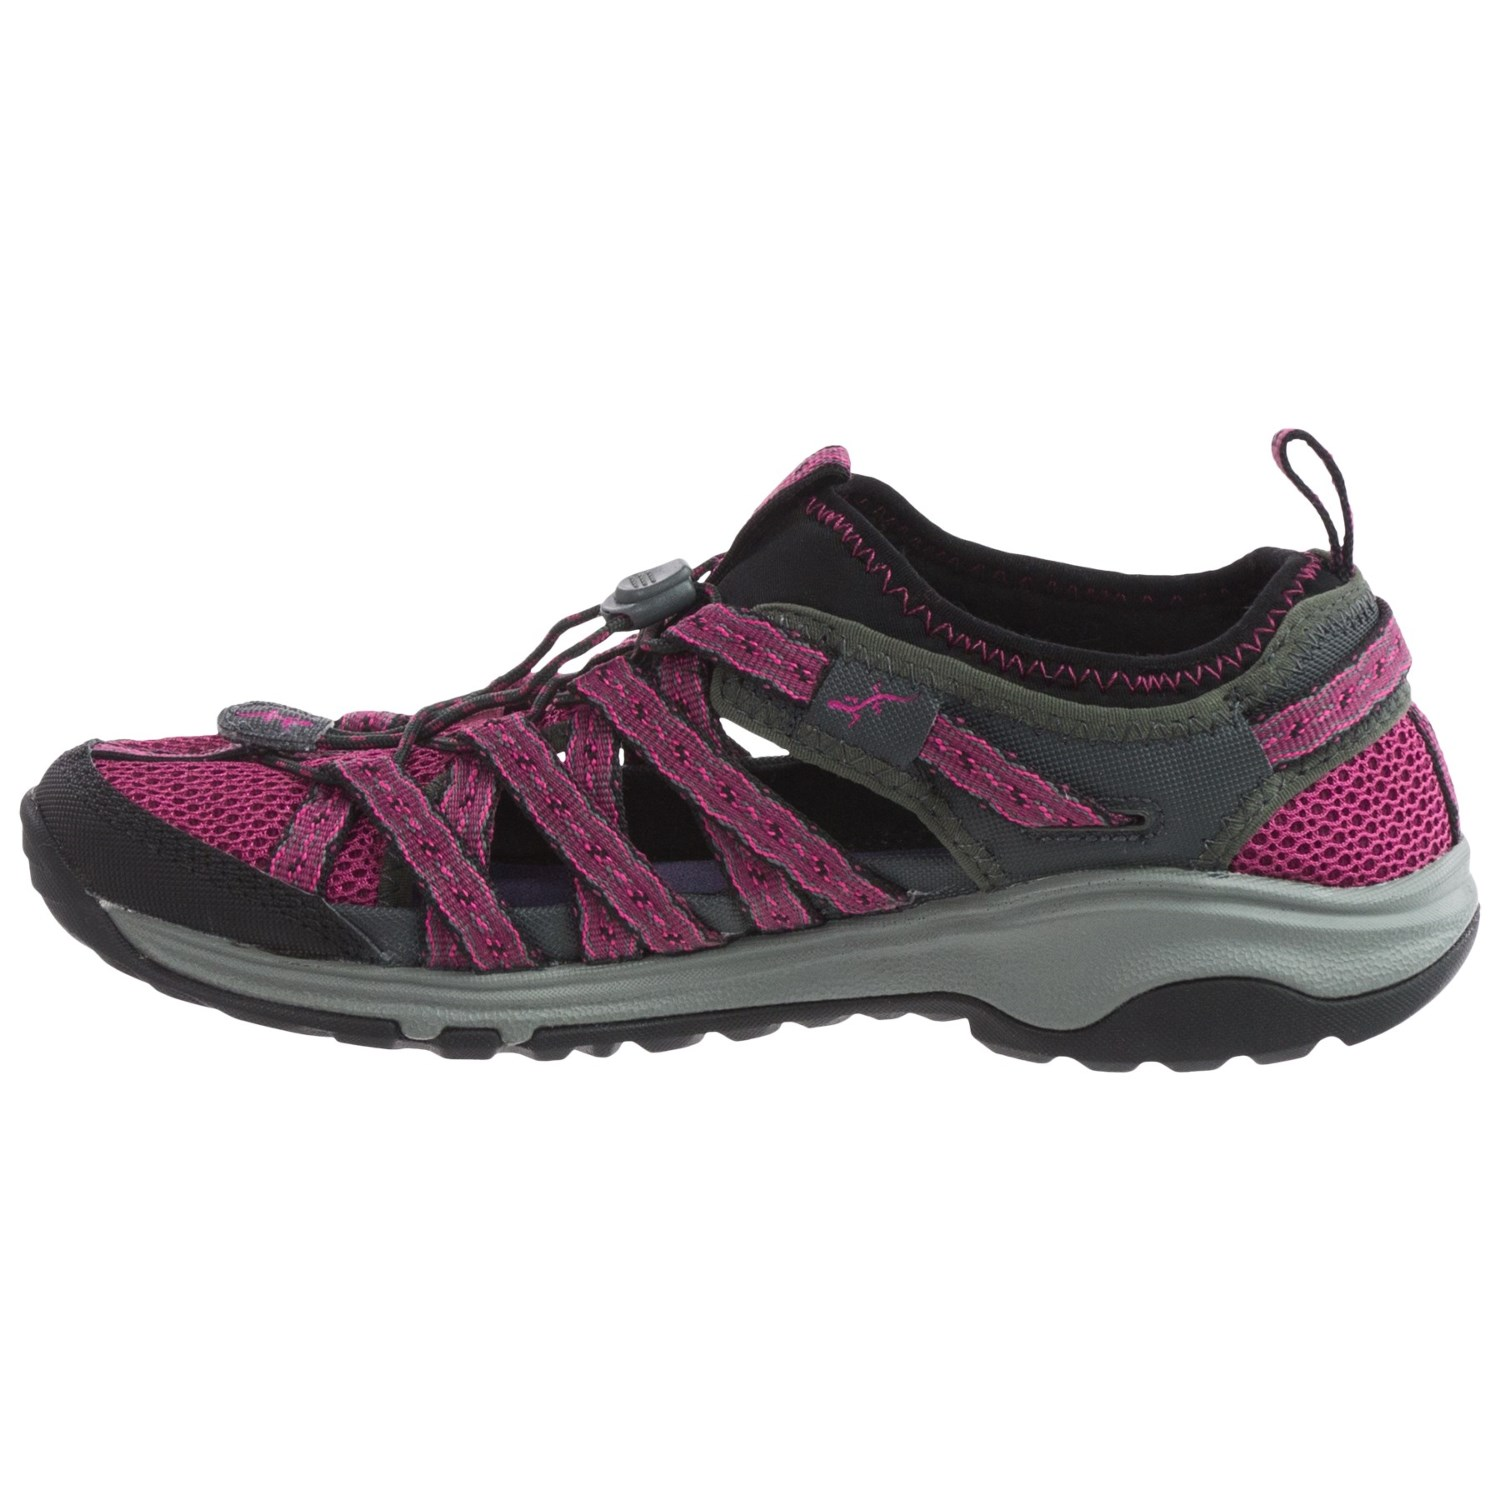 4baa737b756d Chaco OutCross Evo 1 Water Shoes (For Women) - Save 45%